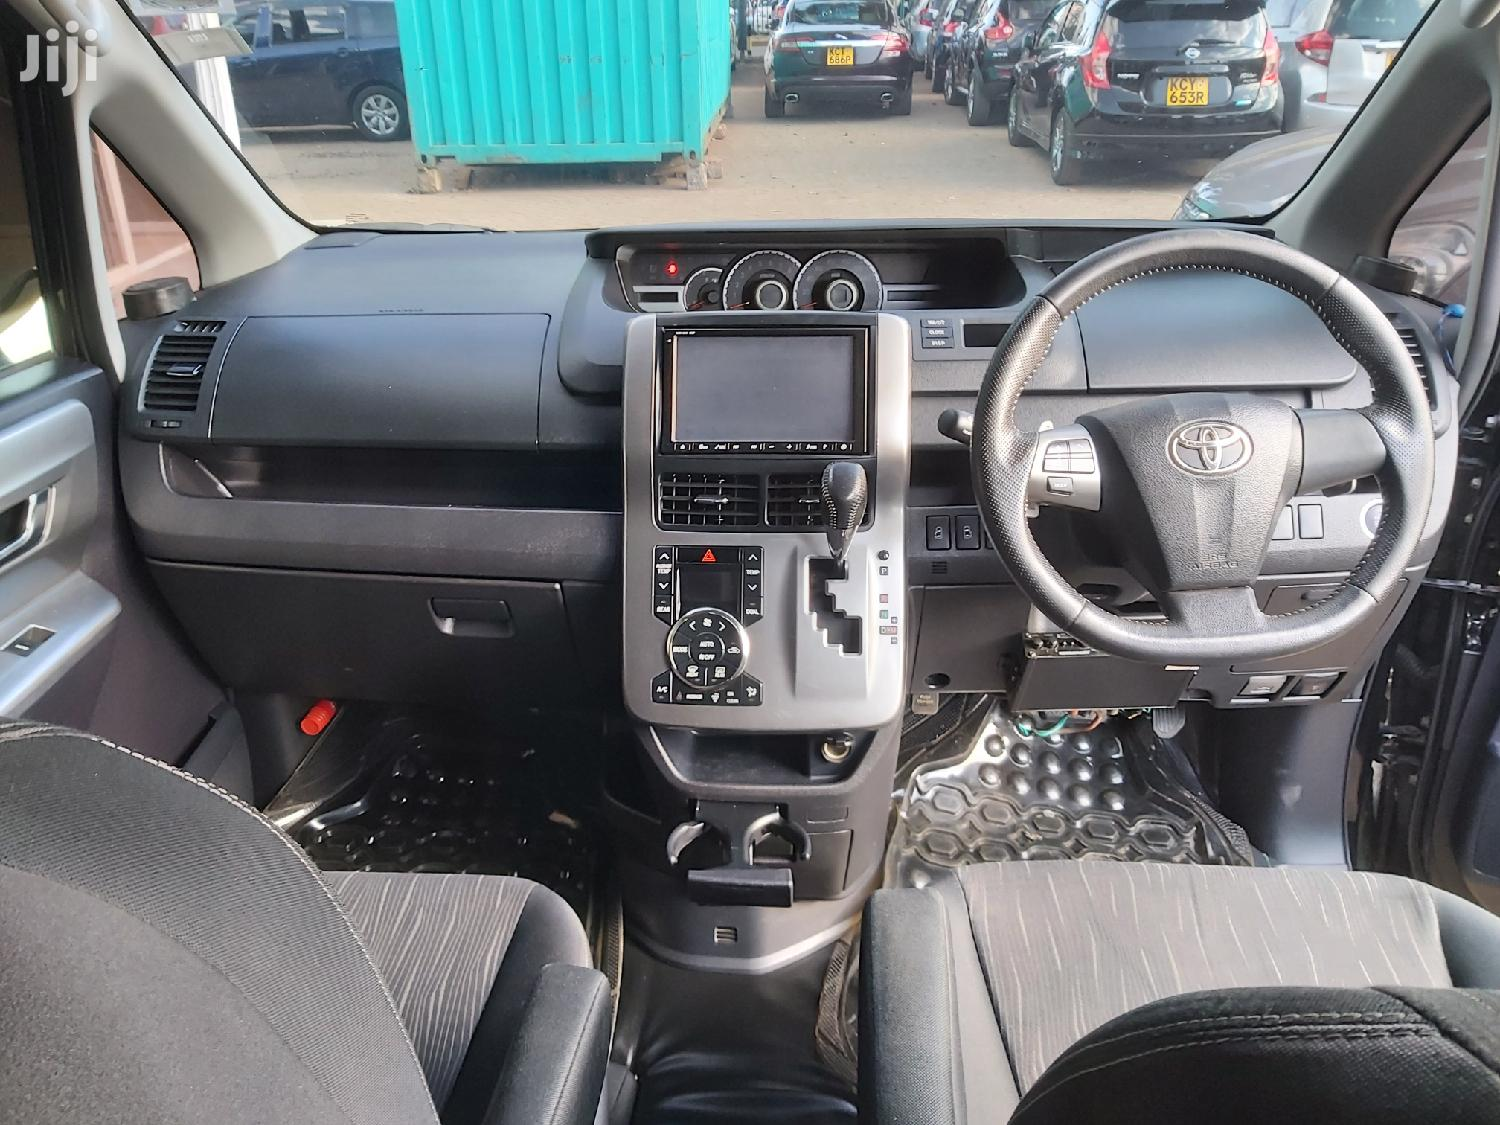 Toyota Voxy 2012 Black | Cars for sale in Kilimani, Nairobi, Kenya